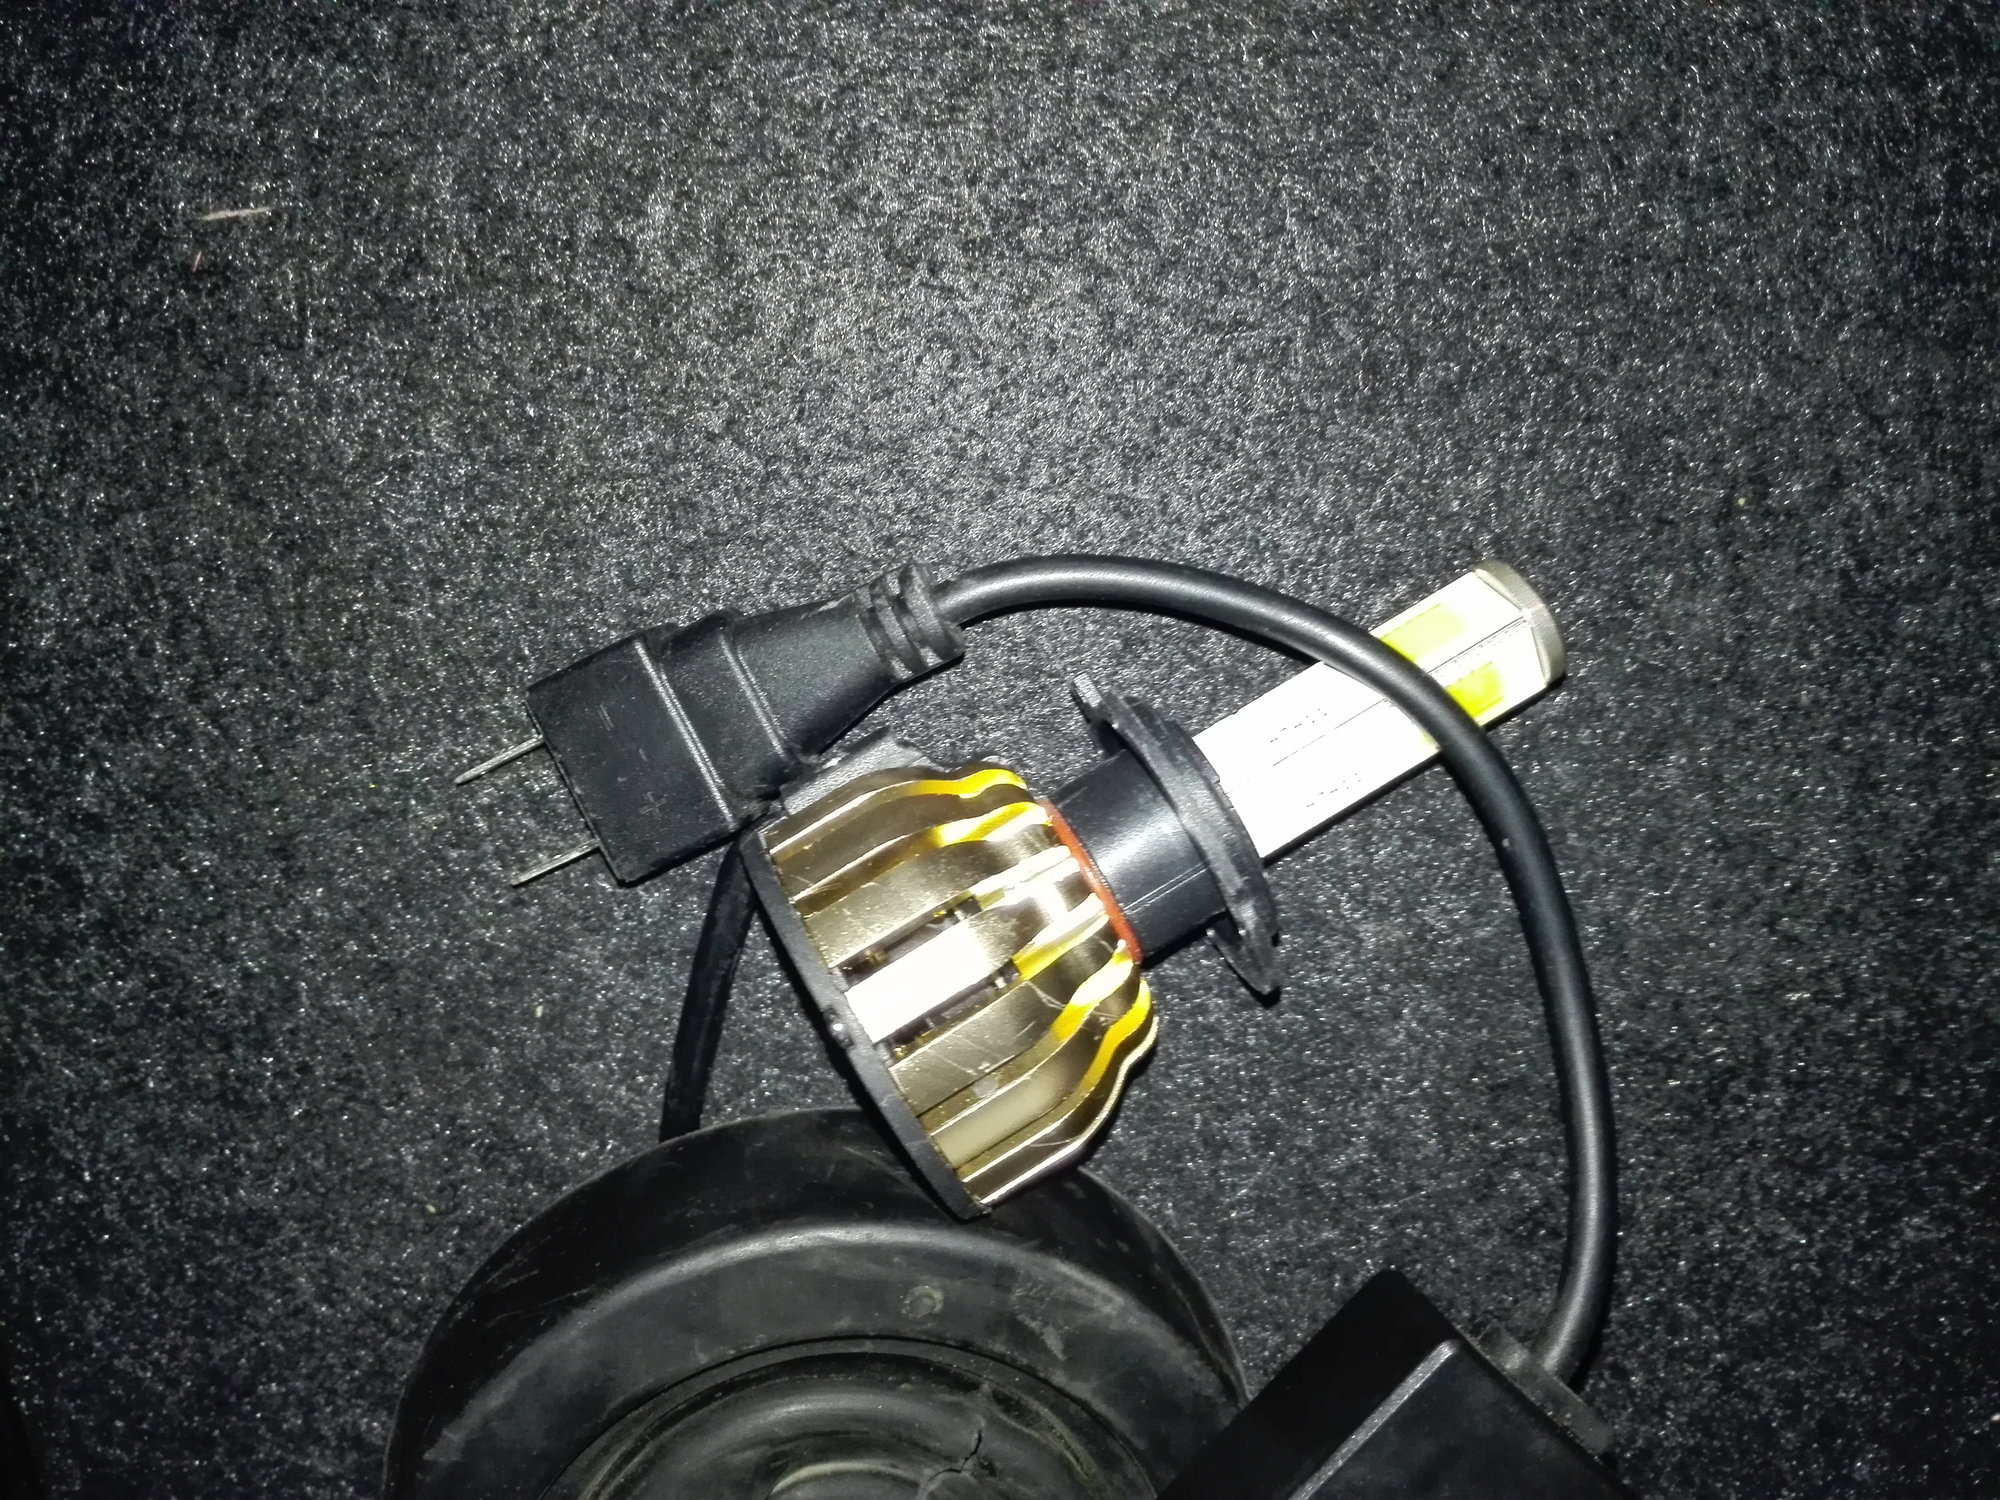 hight resolution of it on our fog lamp it has currently 9006 bulbs installed is the socket same or the change only in wiring because i saw some h7 to 9006 converters